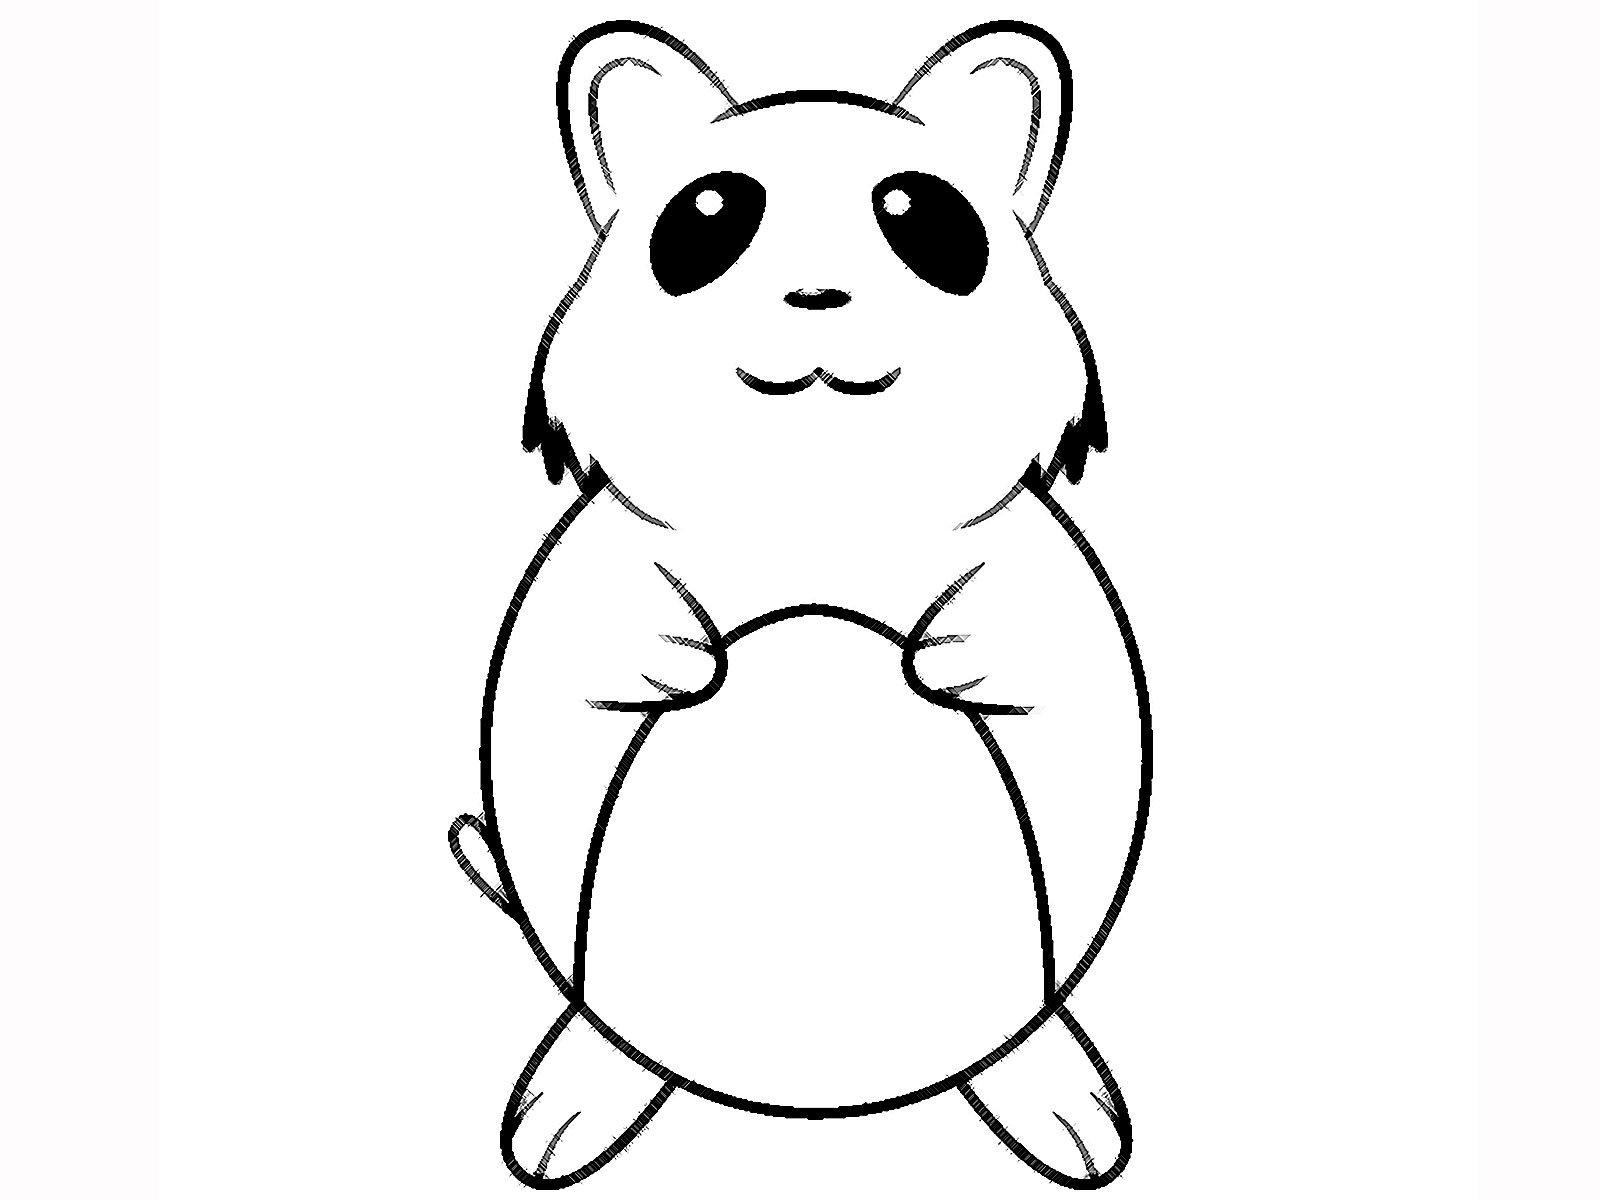 hamster coloring pages to print hamster coloring pages best coloring pages for kids coloring pages hamster print to